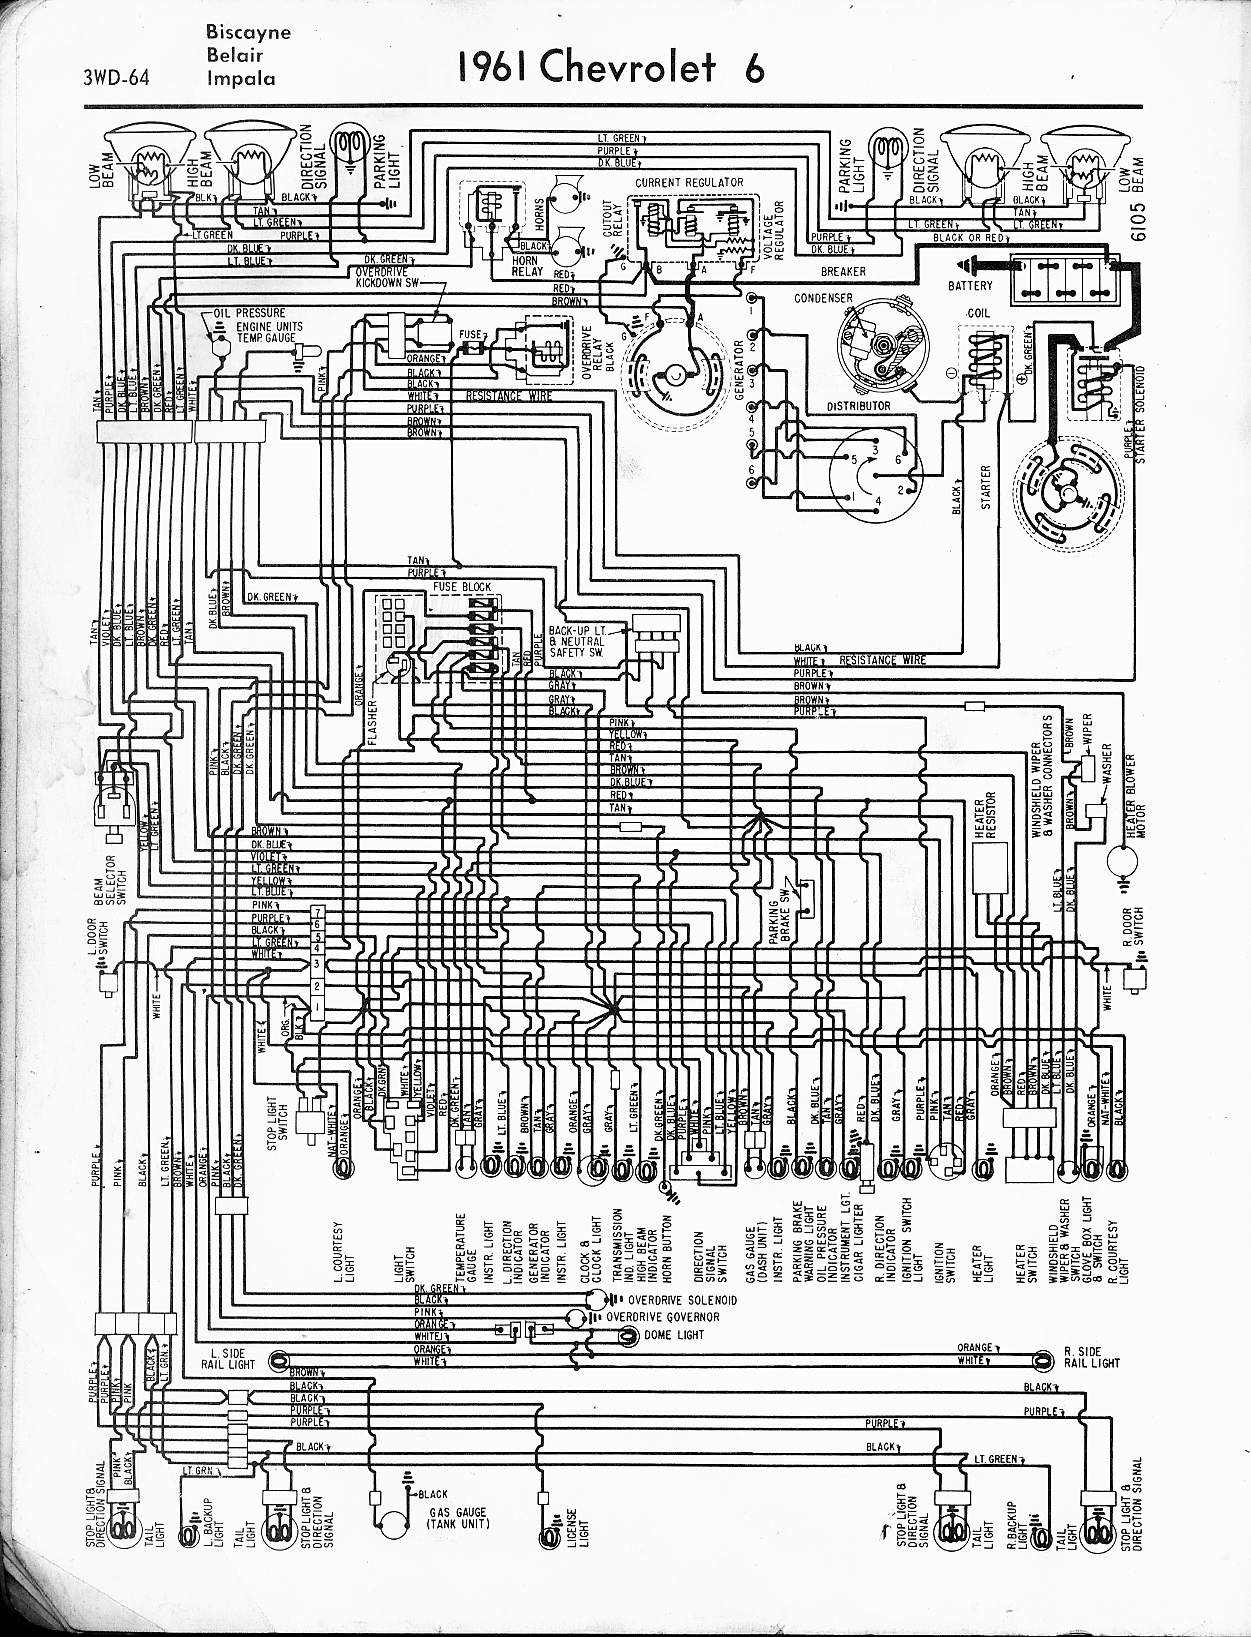 2001 Impala Wiring Diagram Everything About Chevy Headlight 57 65 Diagrams Rh Oldcarmanualproject Com Ignition